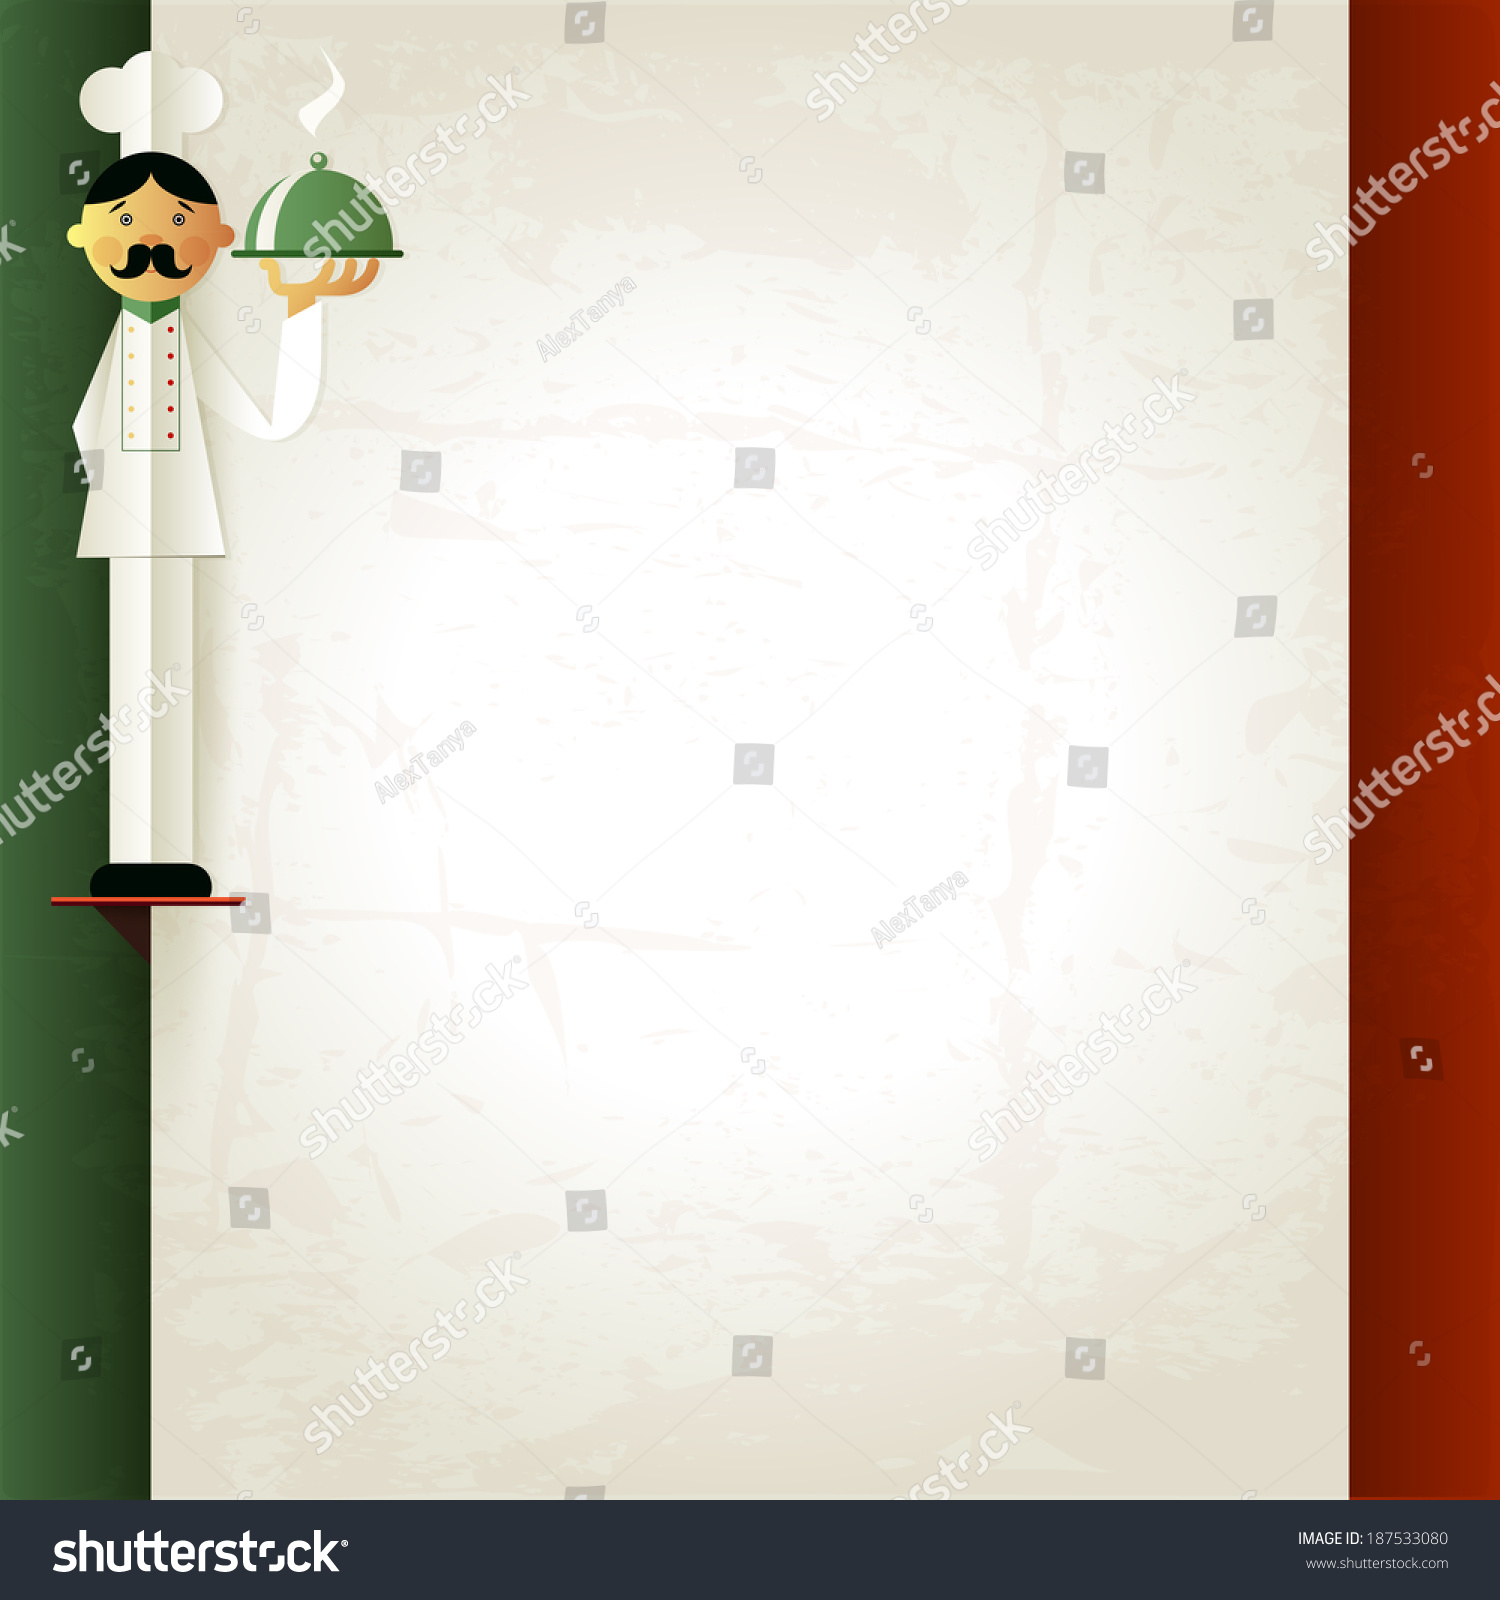 italian menu chef plate menu template stock illustration 187533080